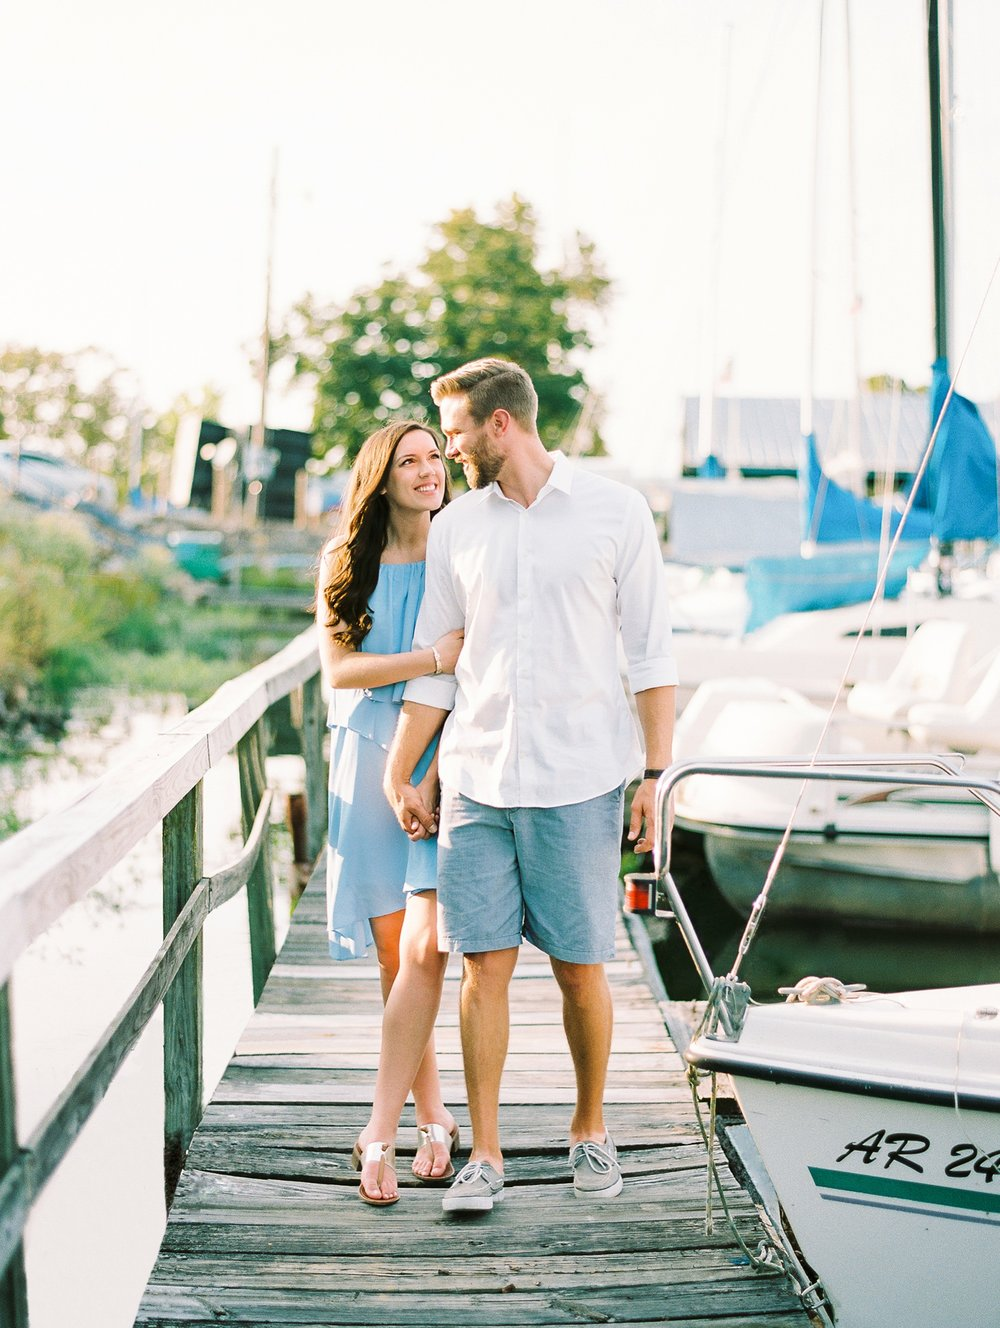 Nautical Boat Engagement Session Film Photographer_0573.jpg